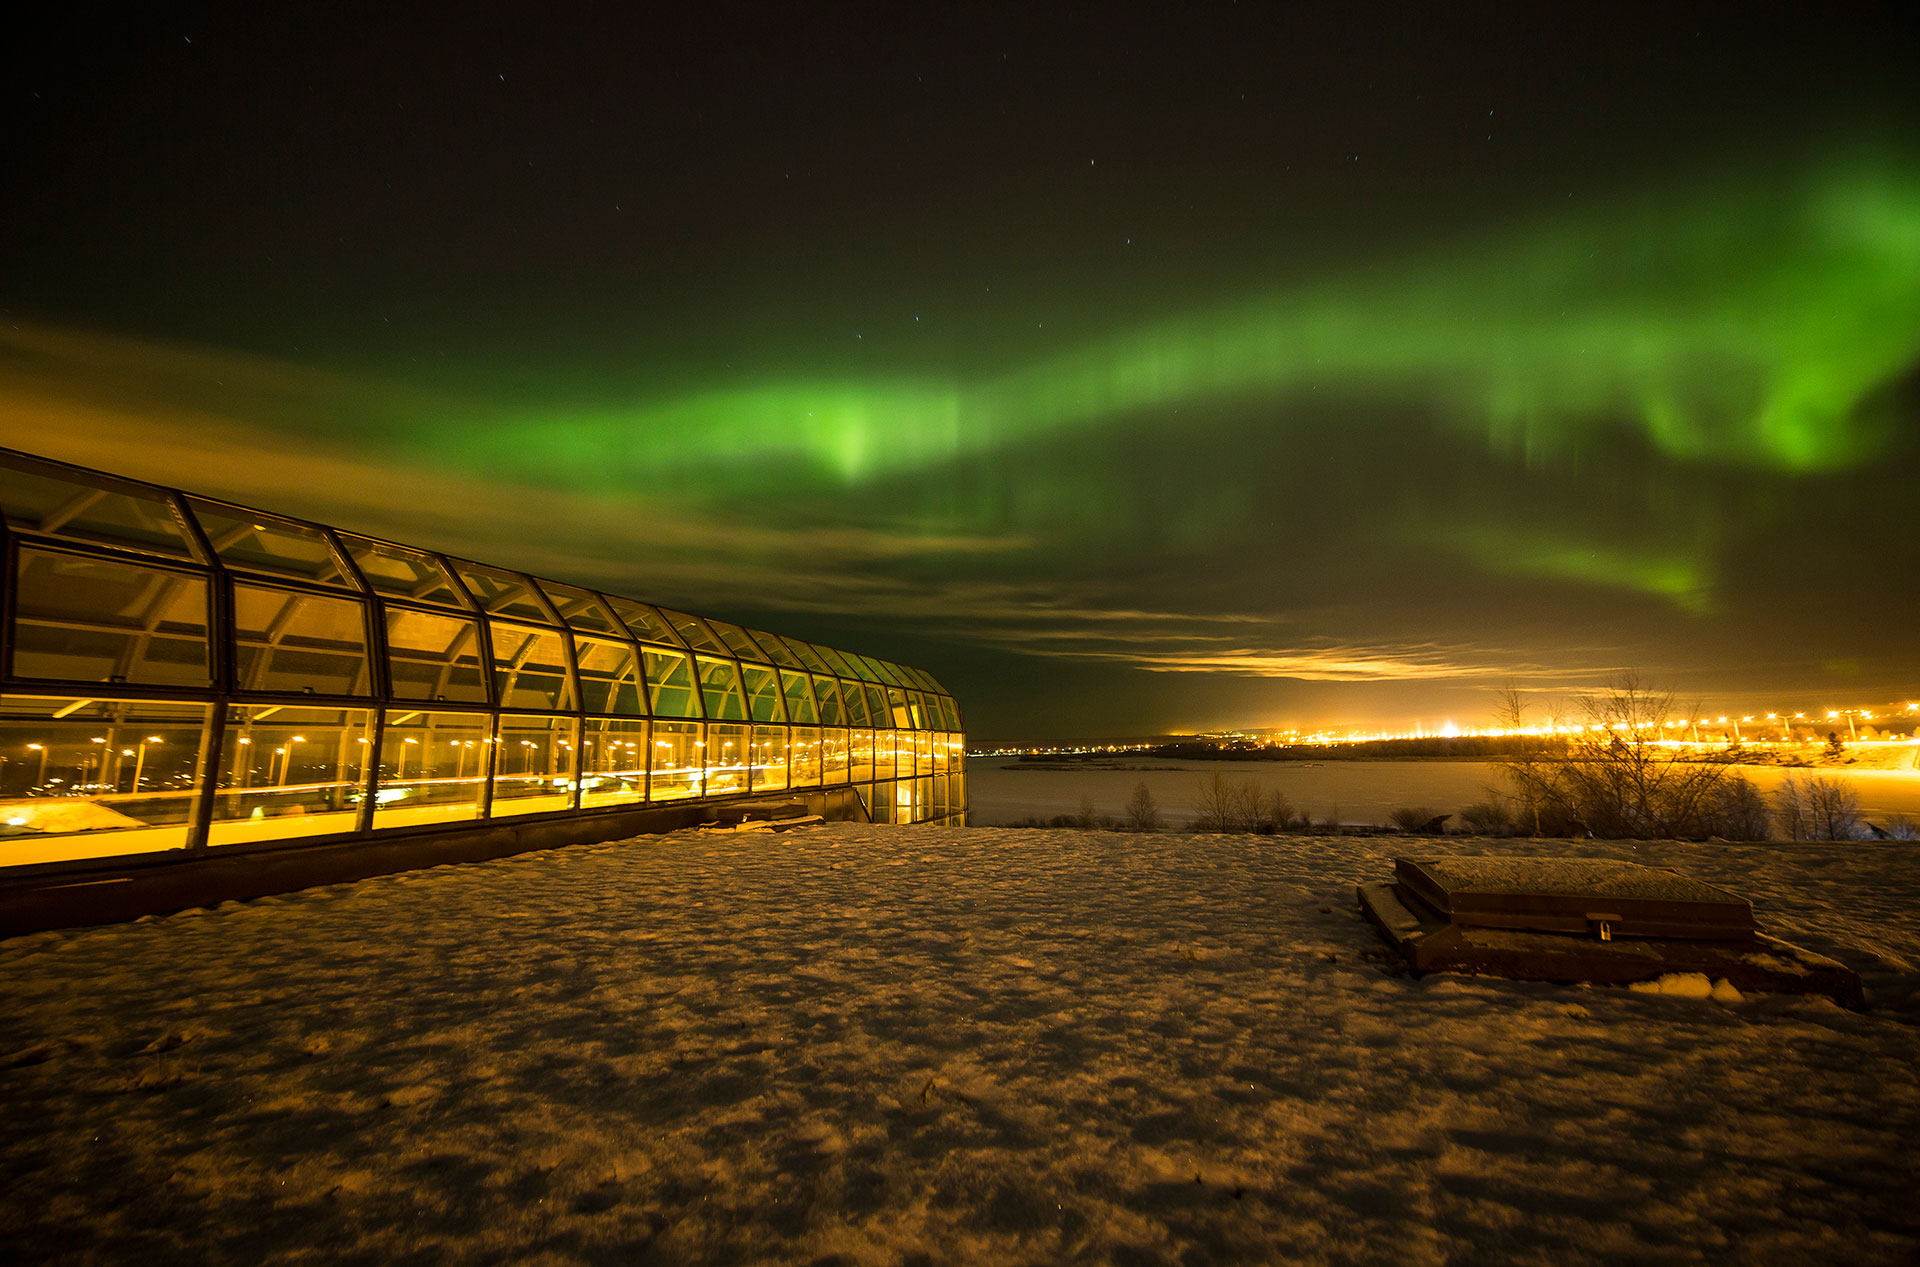 Experience the Northern Lights, Aurora Borealis, in